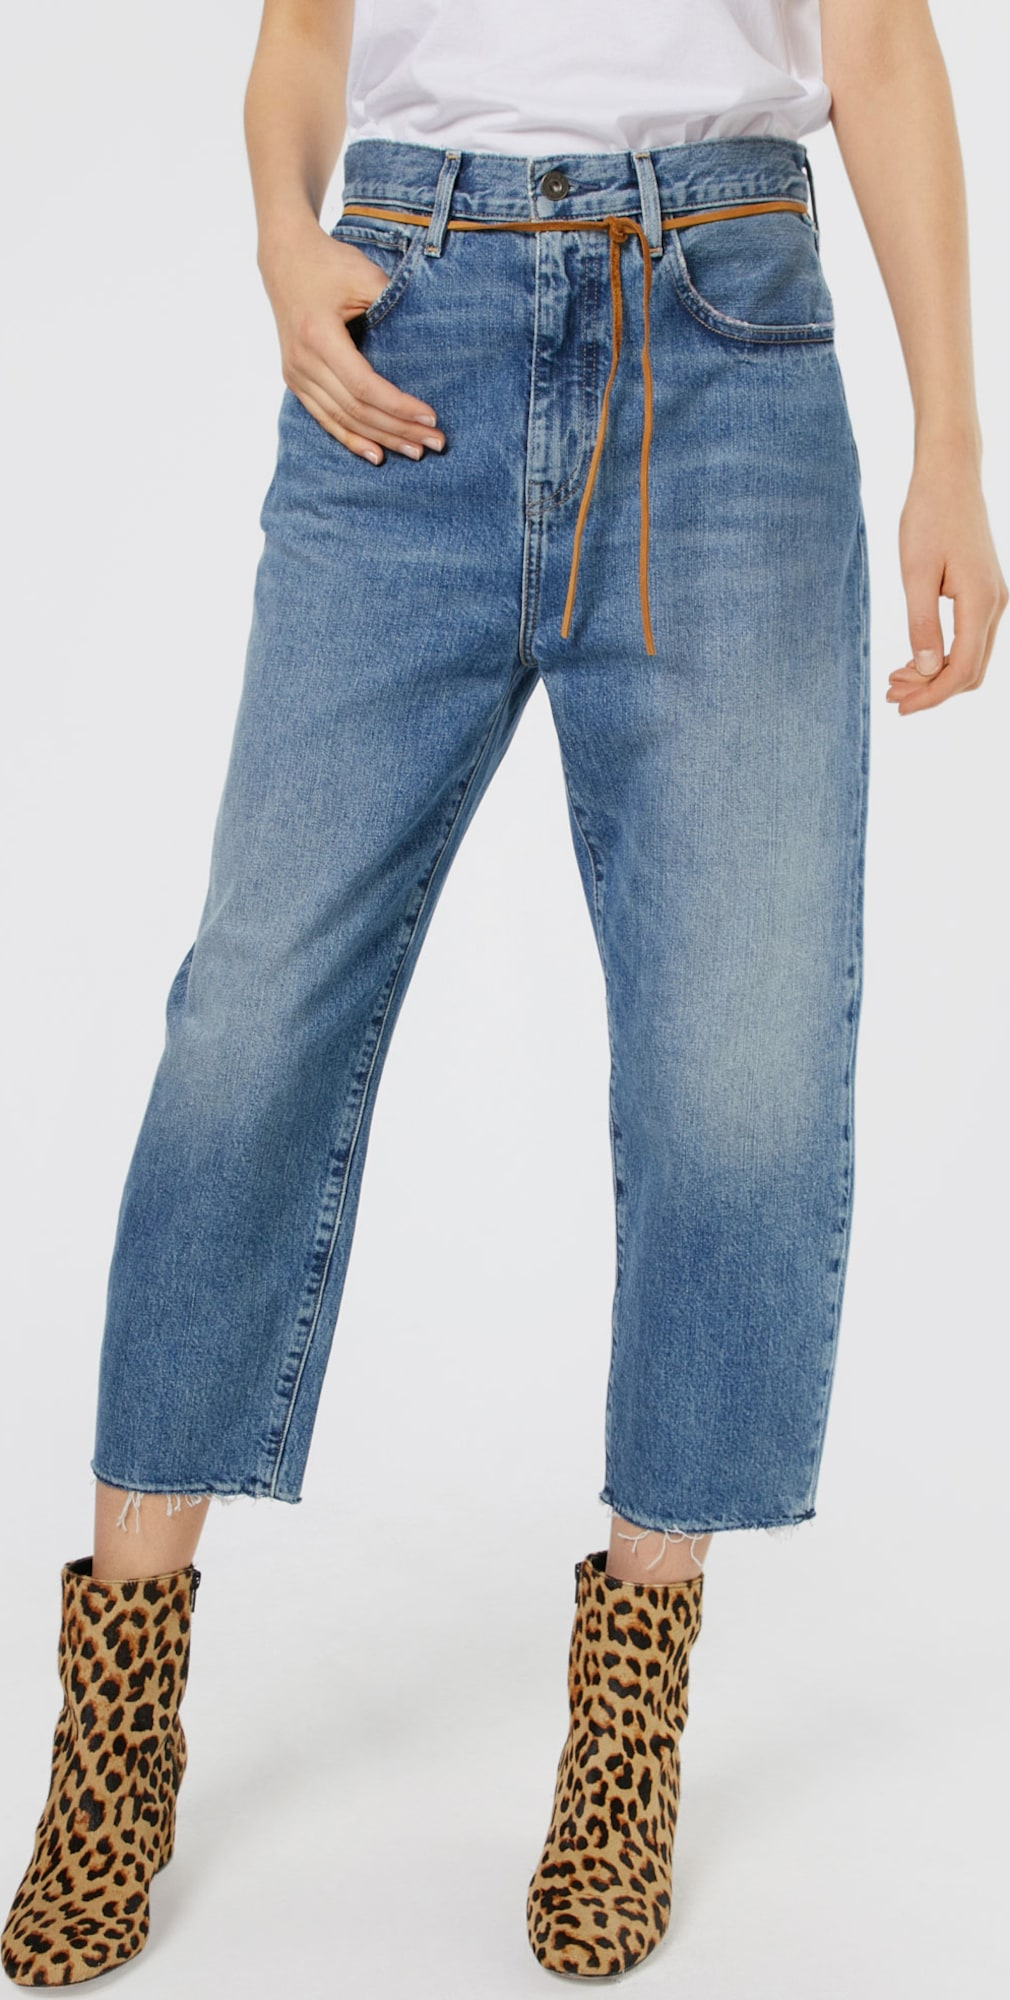 Citaten Weergeven Jeans : Levi s made crafted jeans lmc barrel in blauw about you